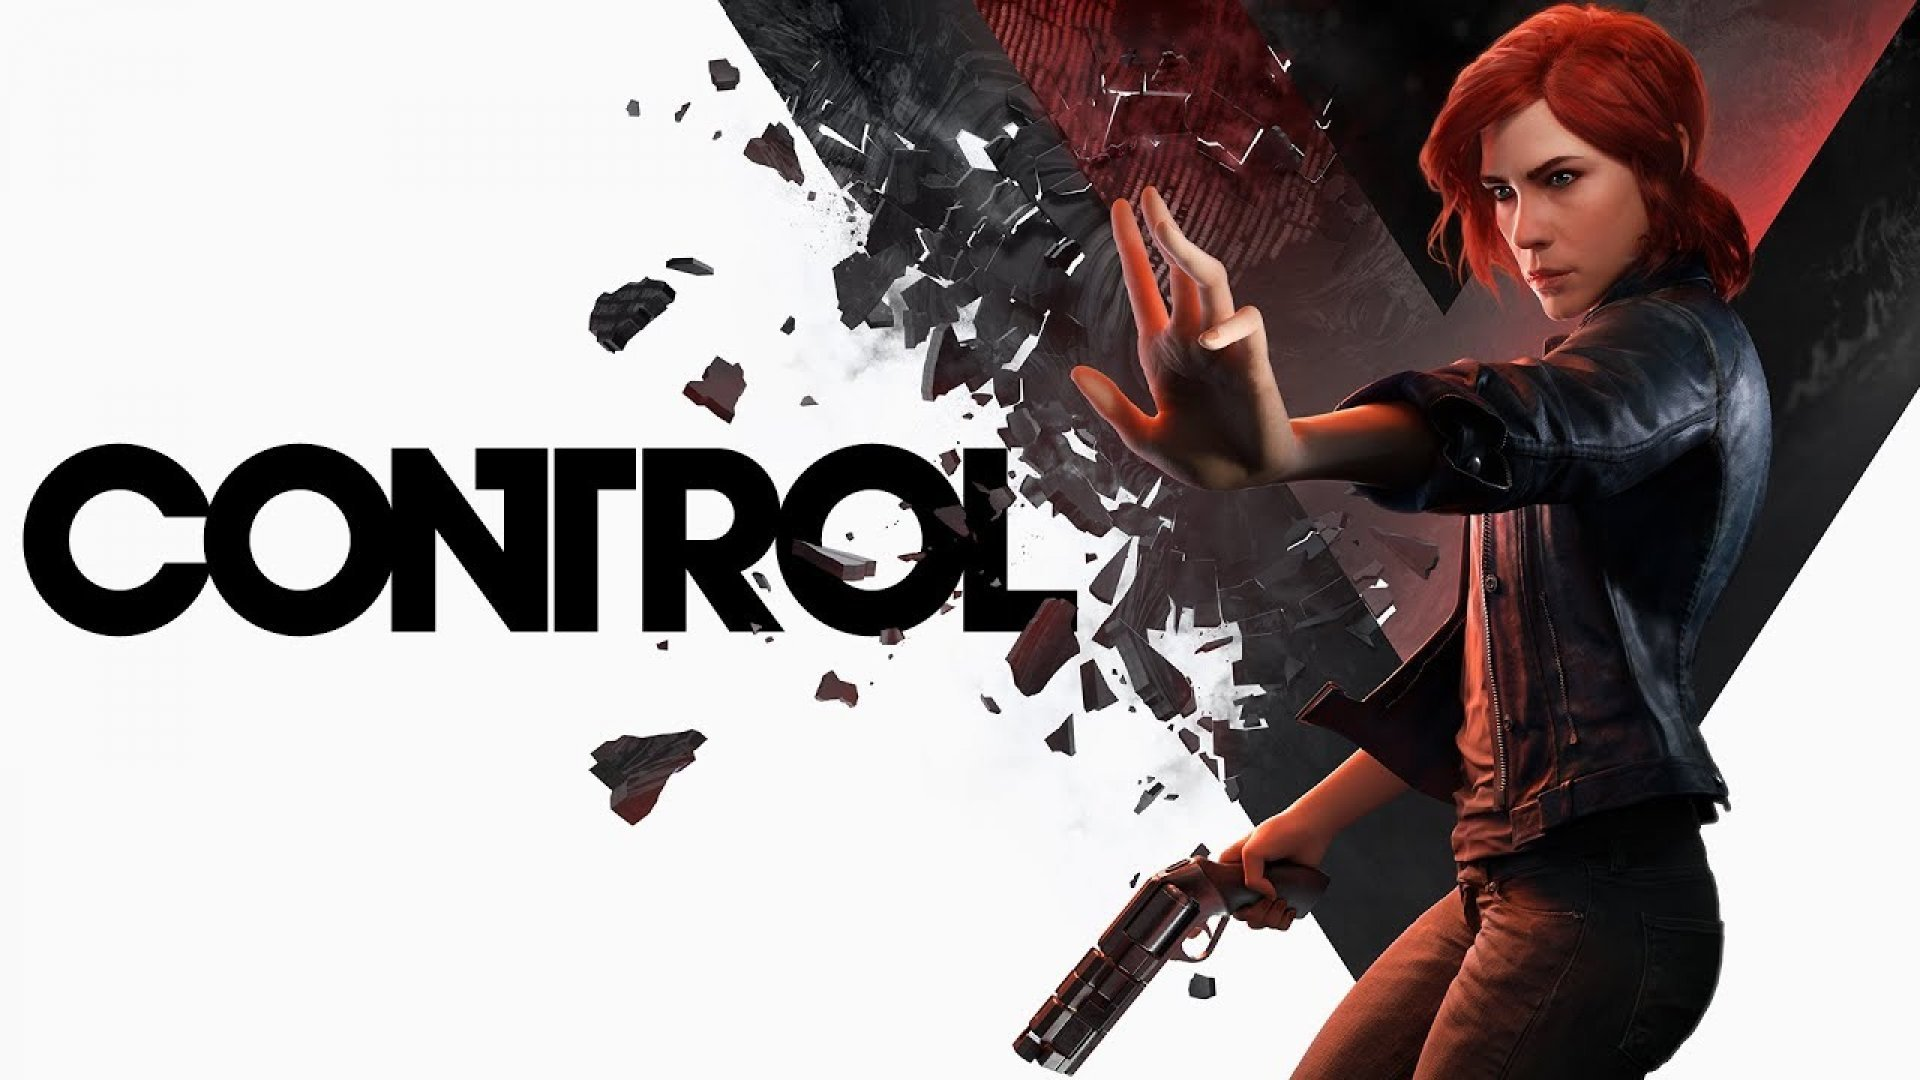 e3 2018 everything we know so far about remedy s new game control